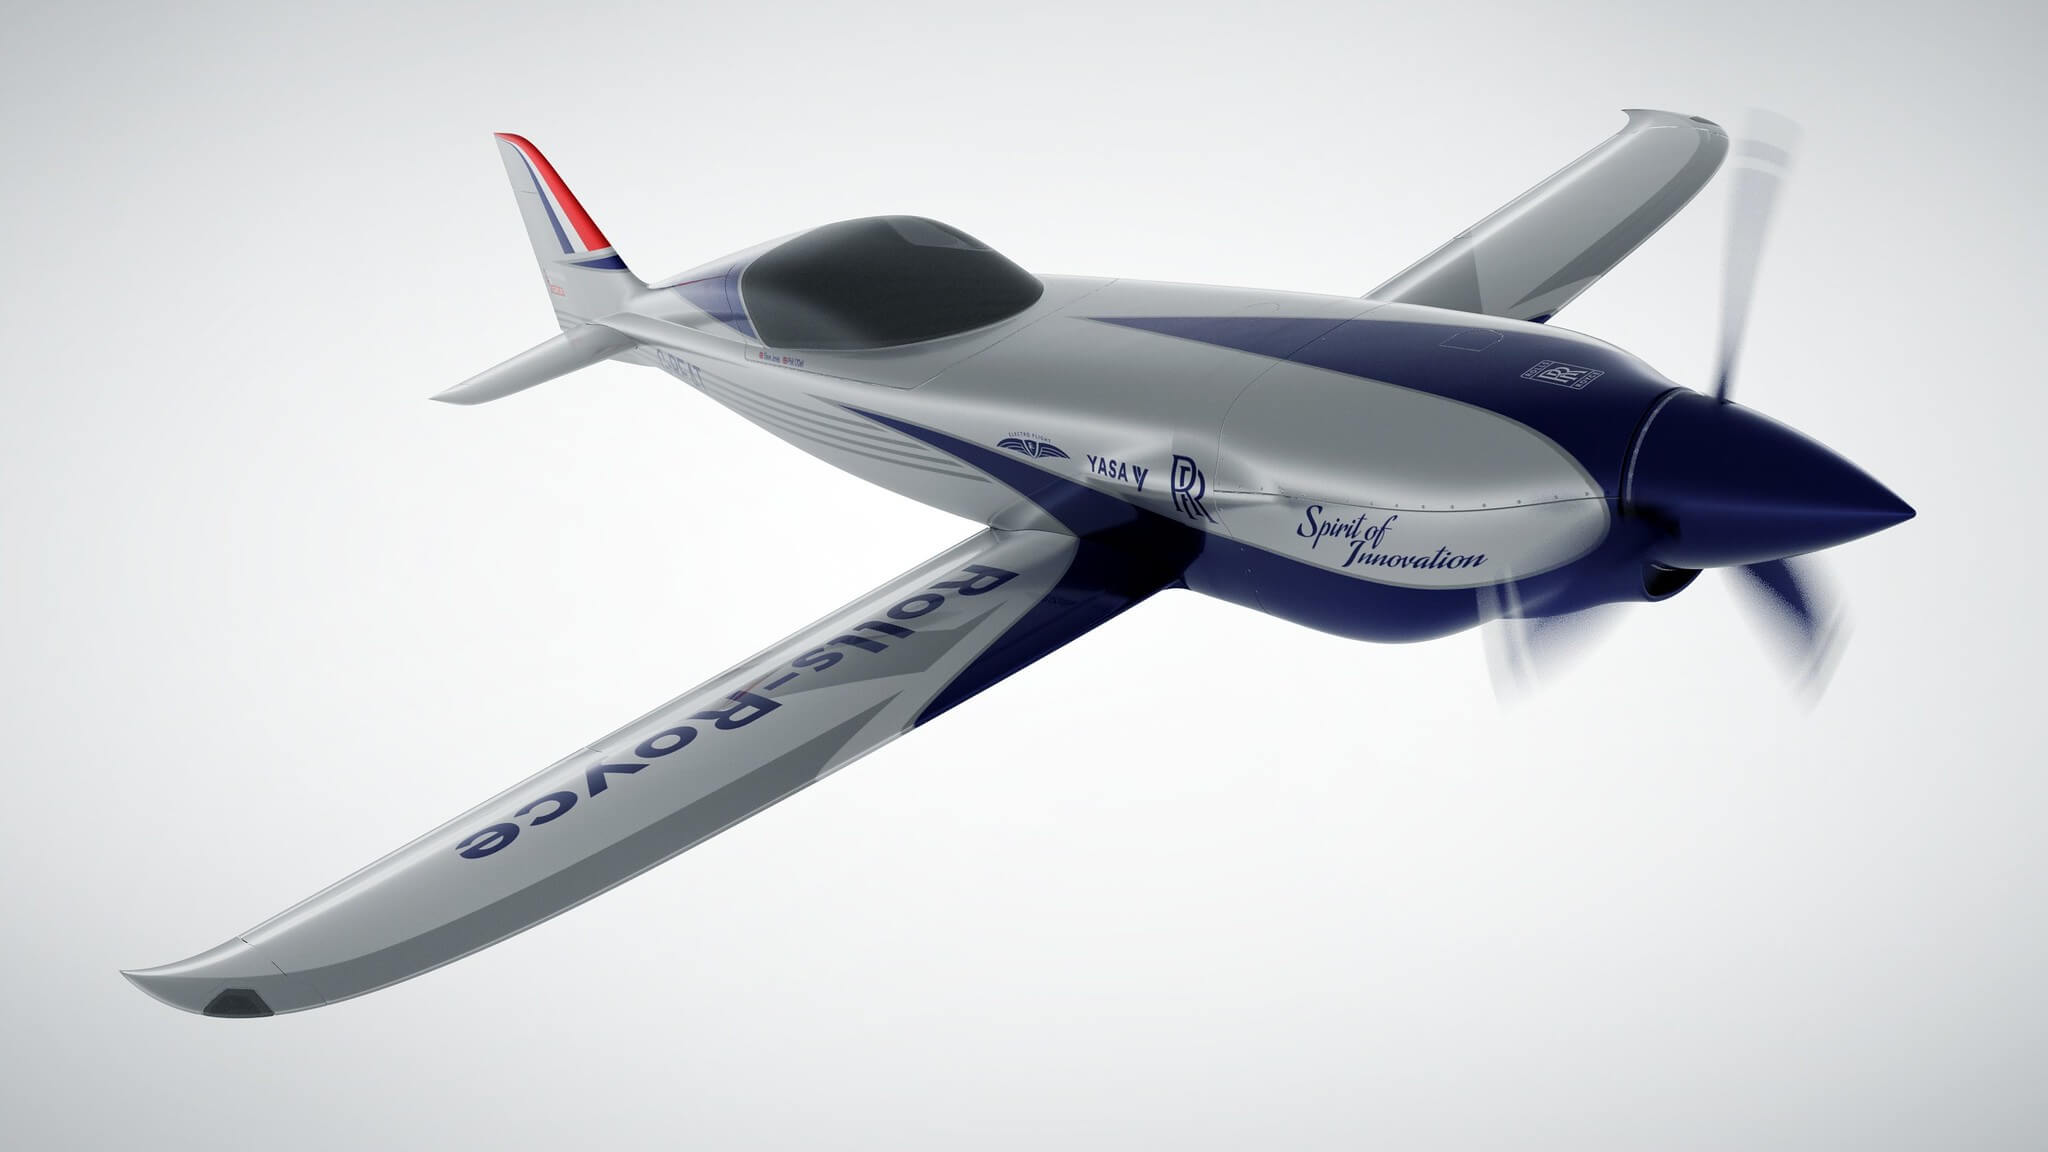 Rolls-Royce aims for the world's fastest all-electric plane under its ACCEL initiative